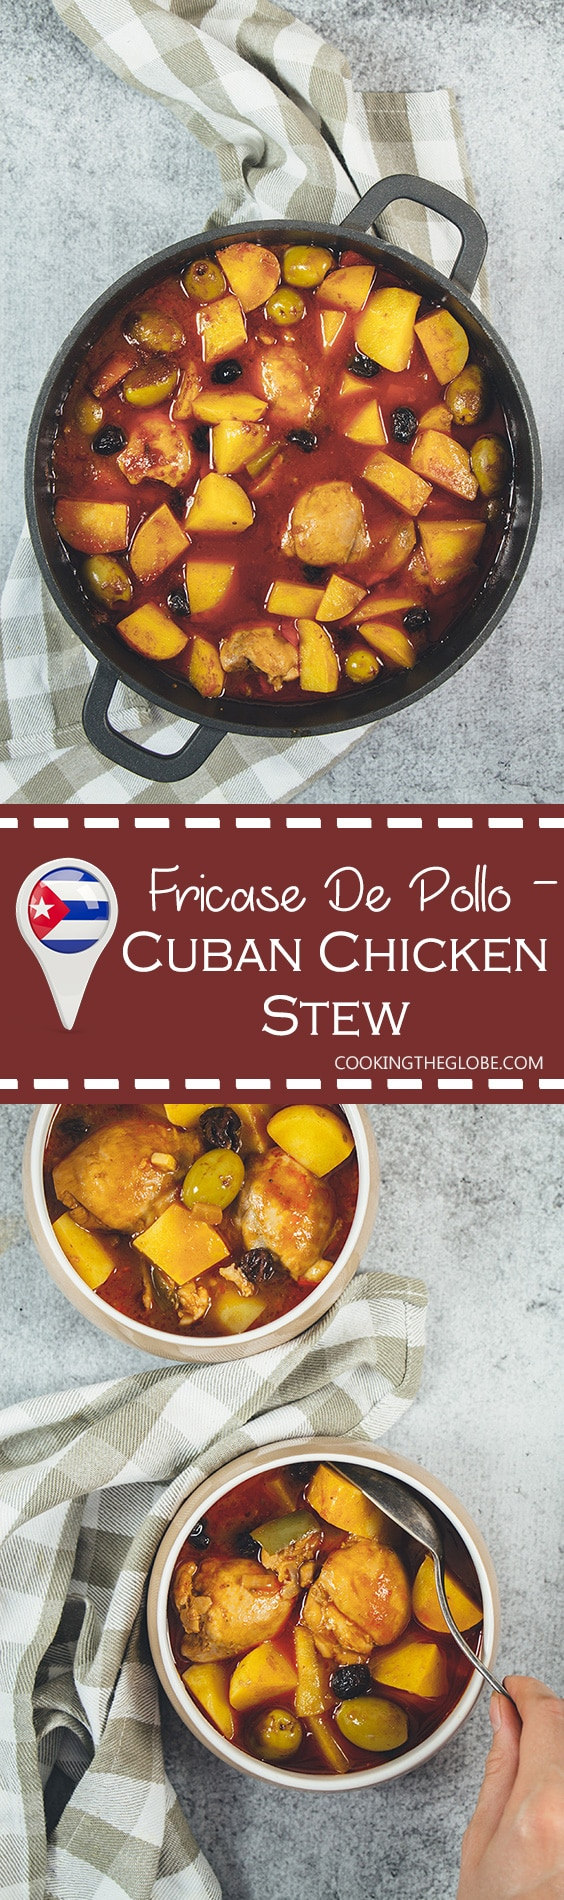 Fricase De Pollo is the famous Cuban chicken stew packed with tons of different flavors. A great stew the whole family will love! | cookingtheglobe.com